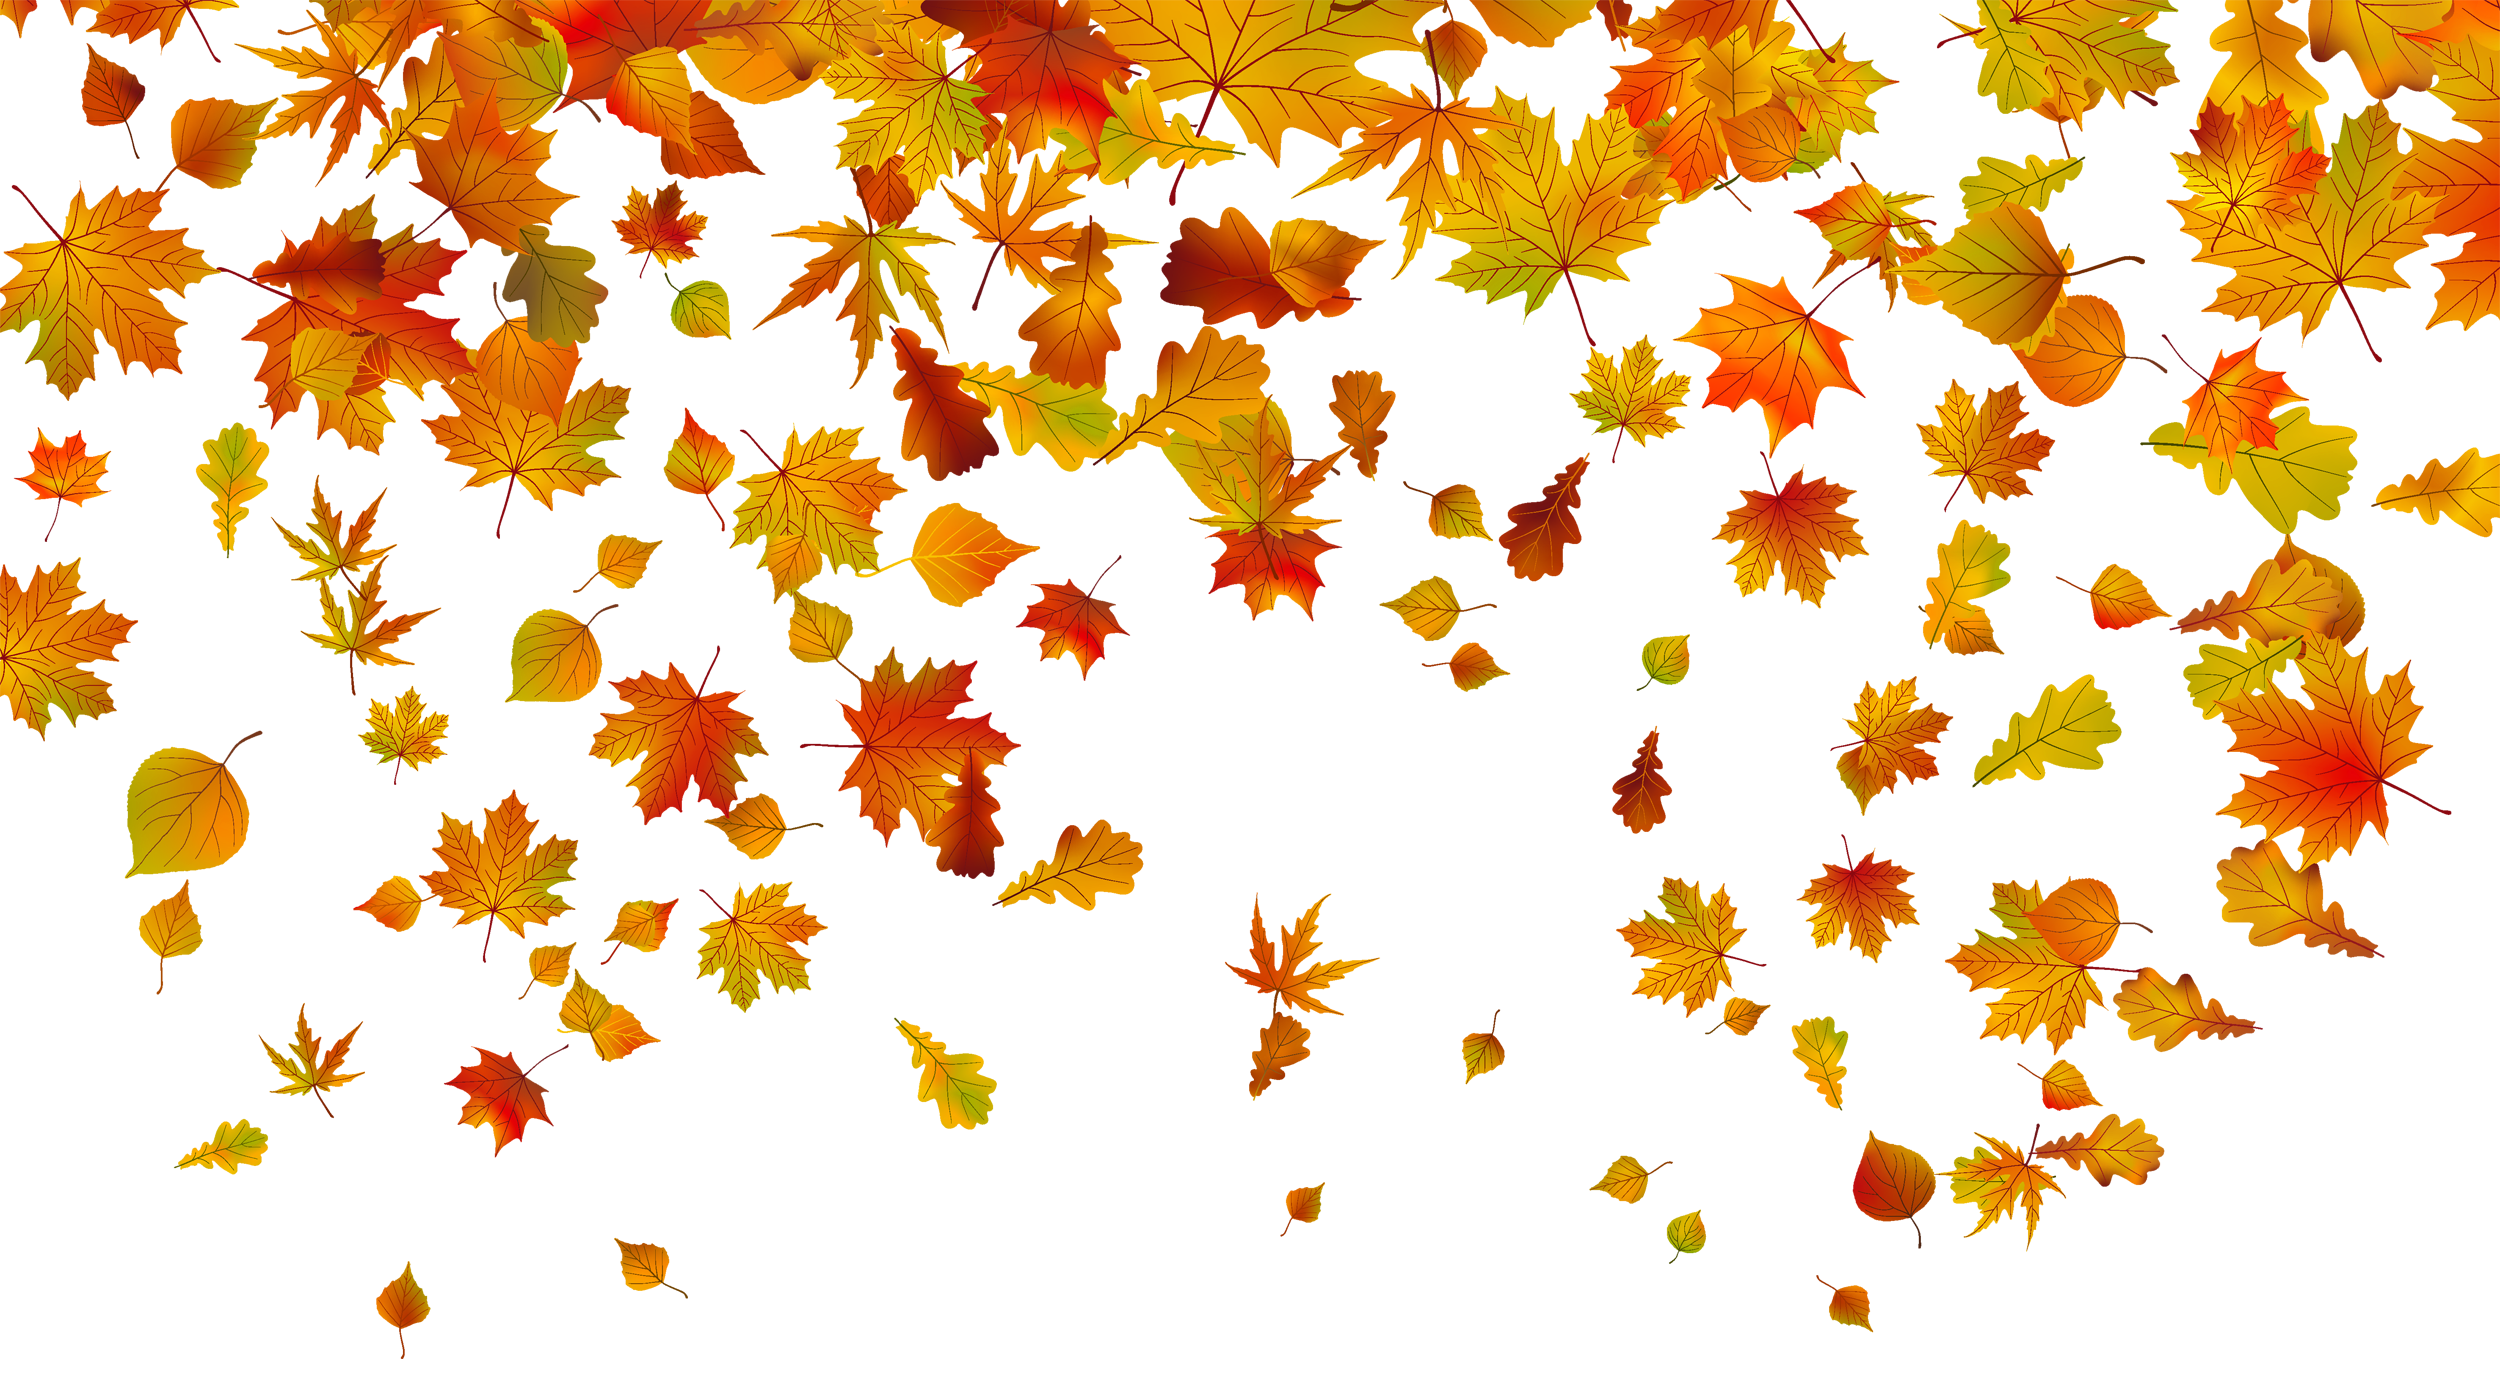 fall images clipart transparent background